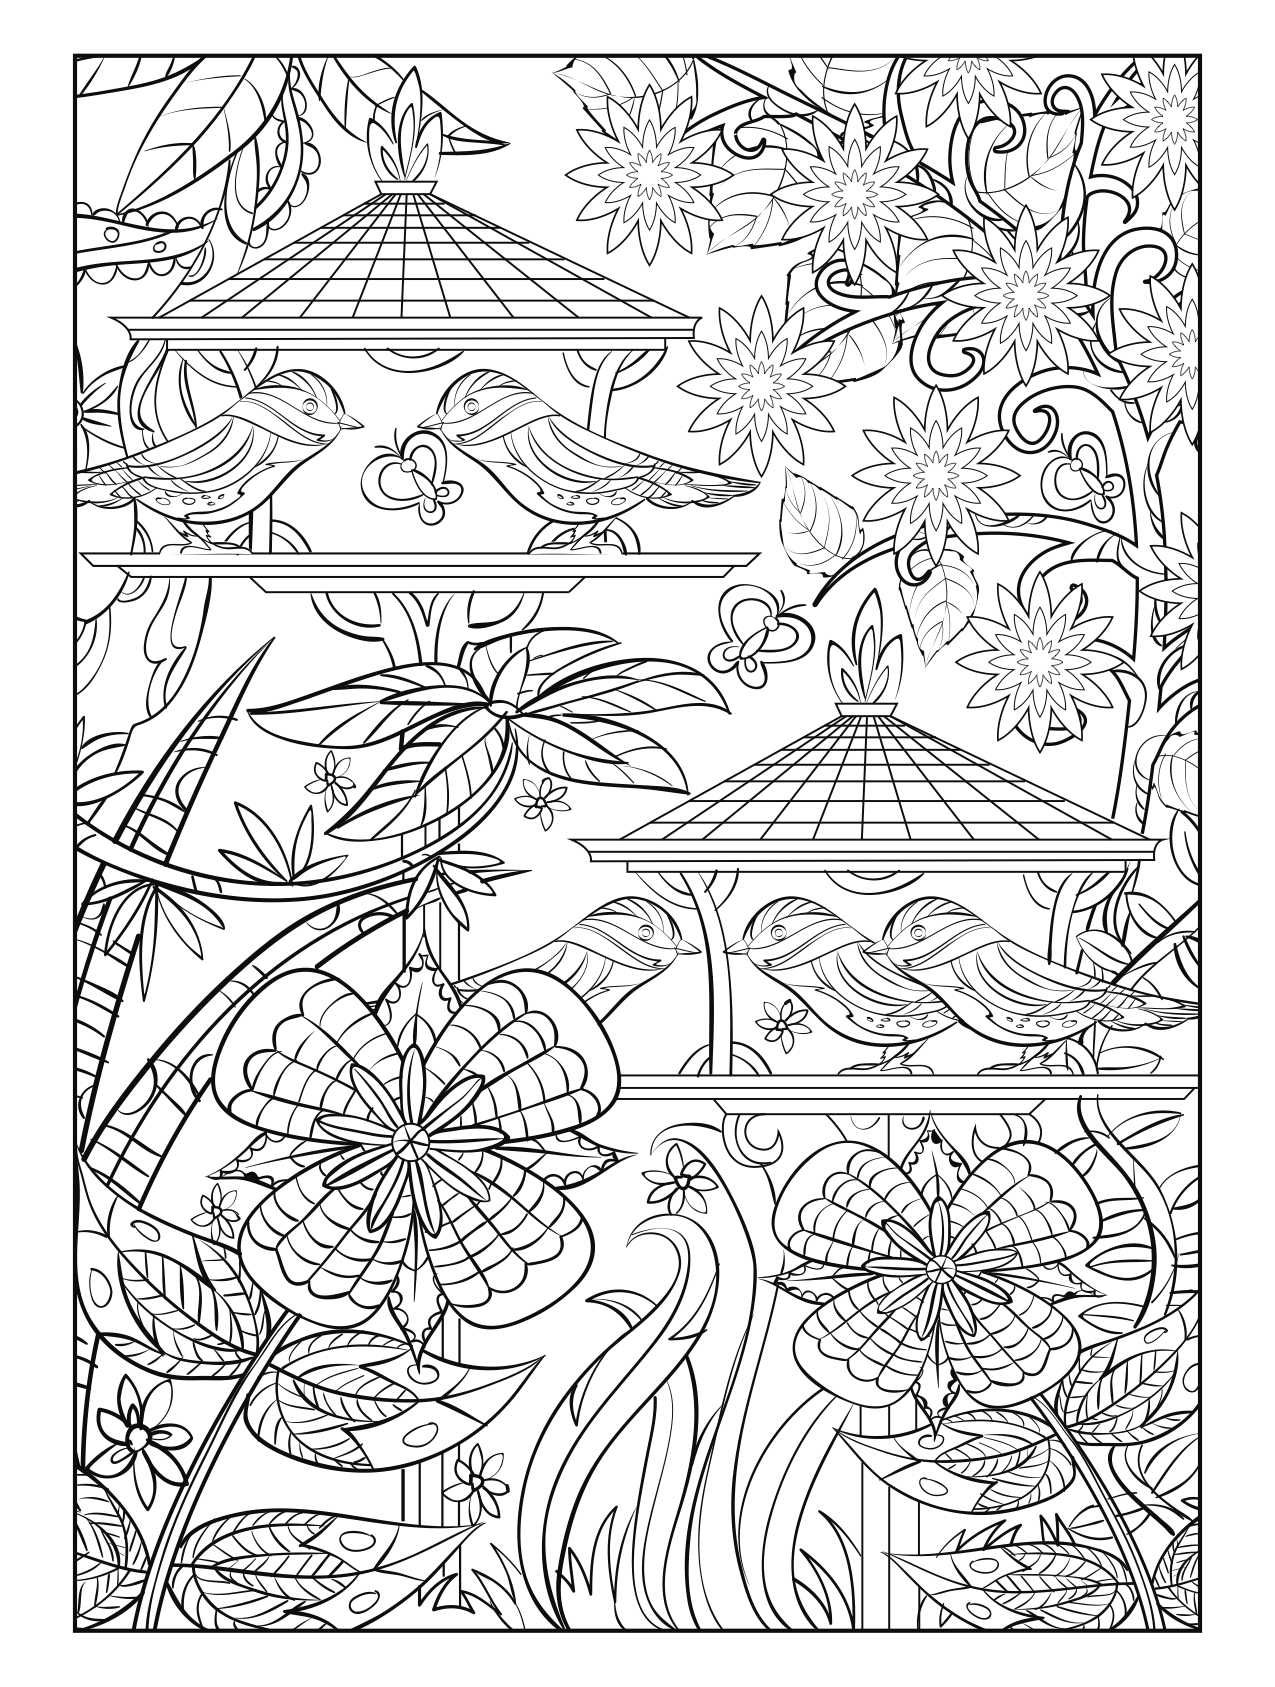 Choose from a variety of free coloring